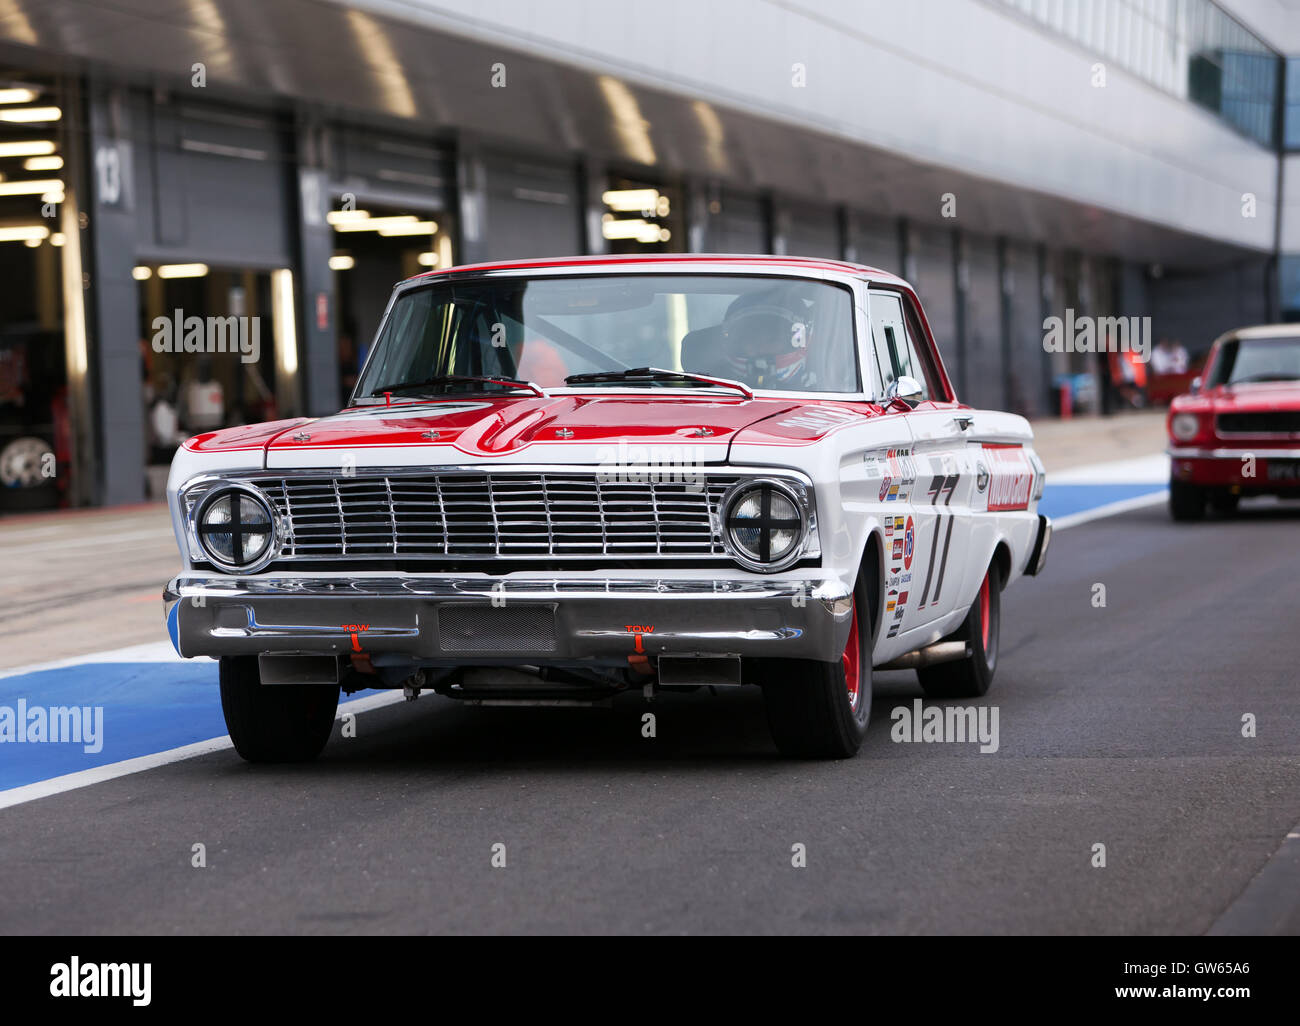 Steven Wood exiting the International Pit lane in a 1964 Ford Falcon for qualifying in the Pre'66 Big Engine - Stock Image